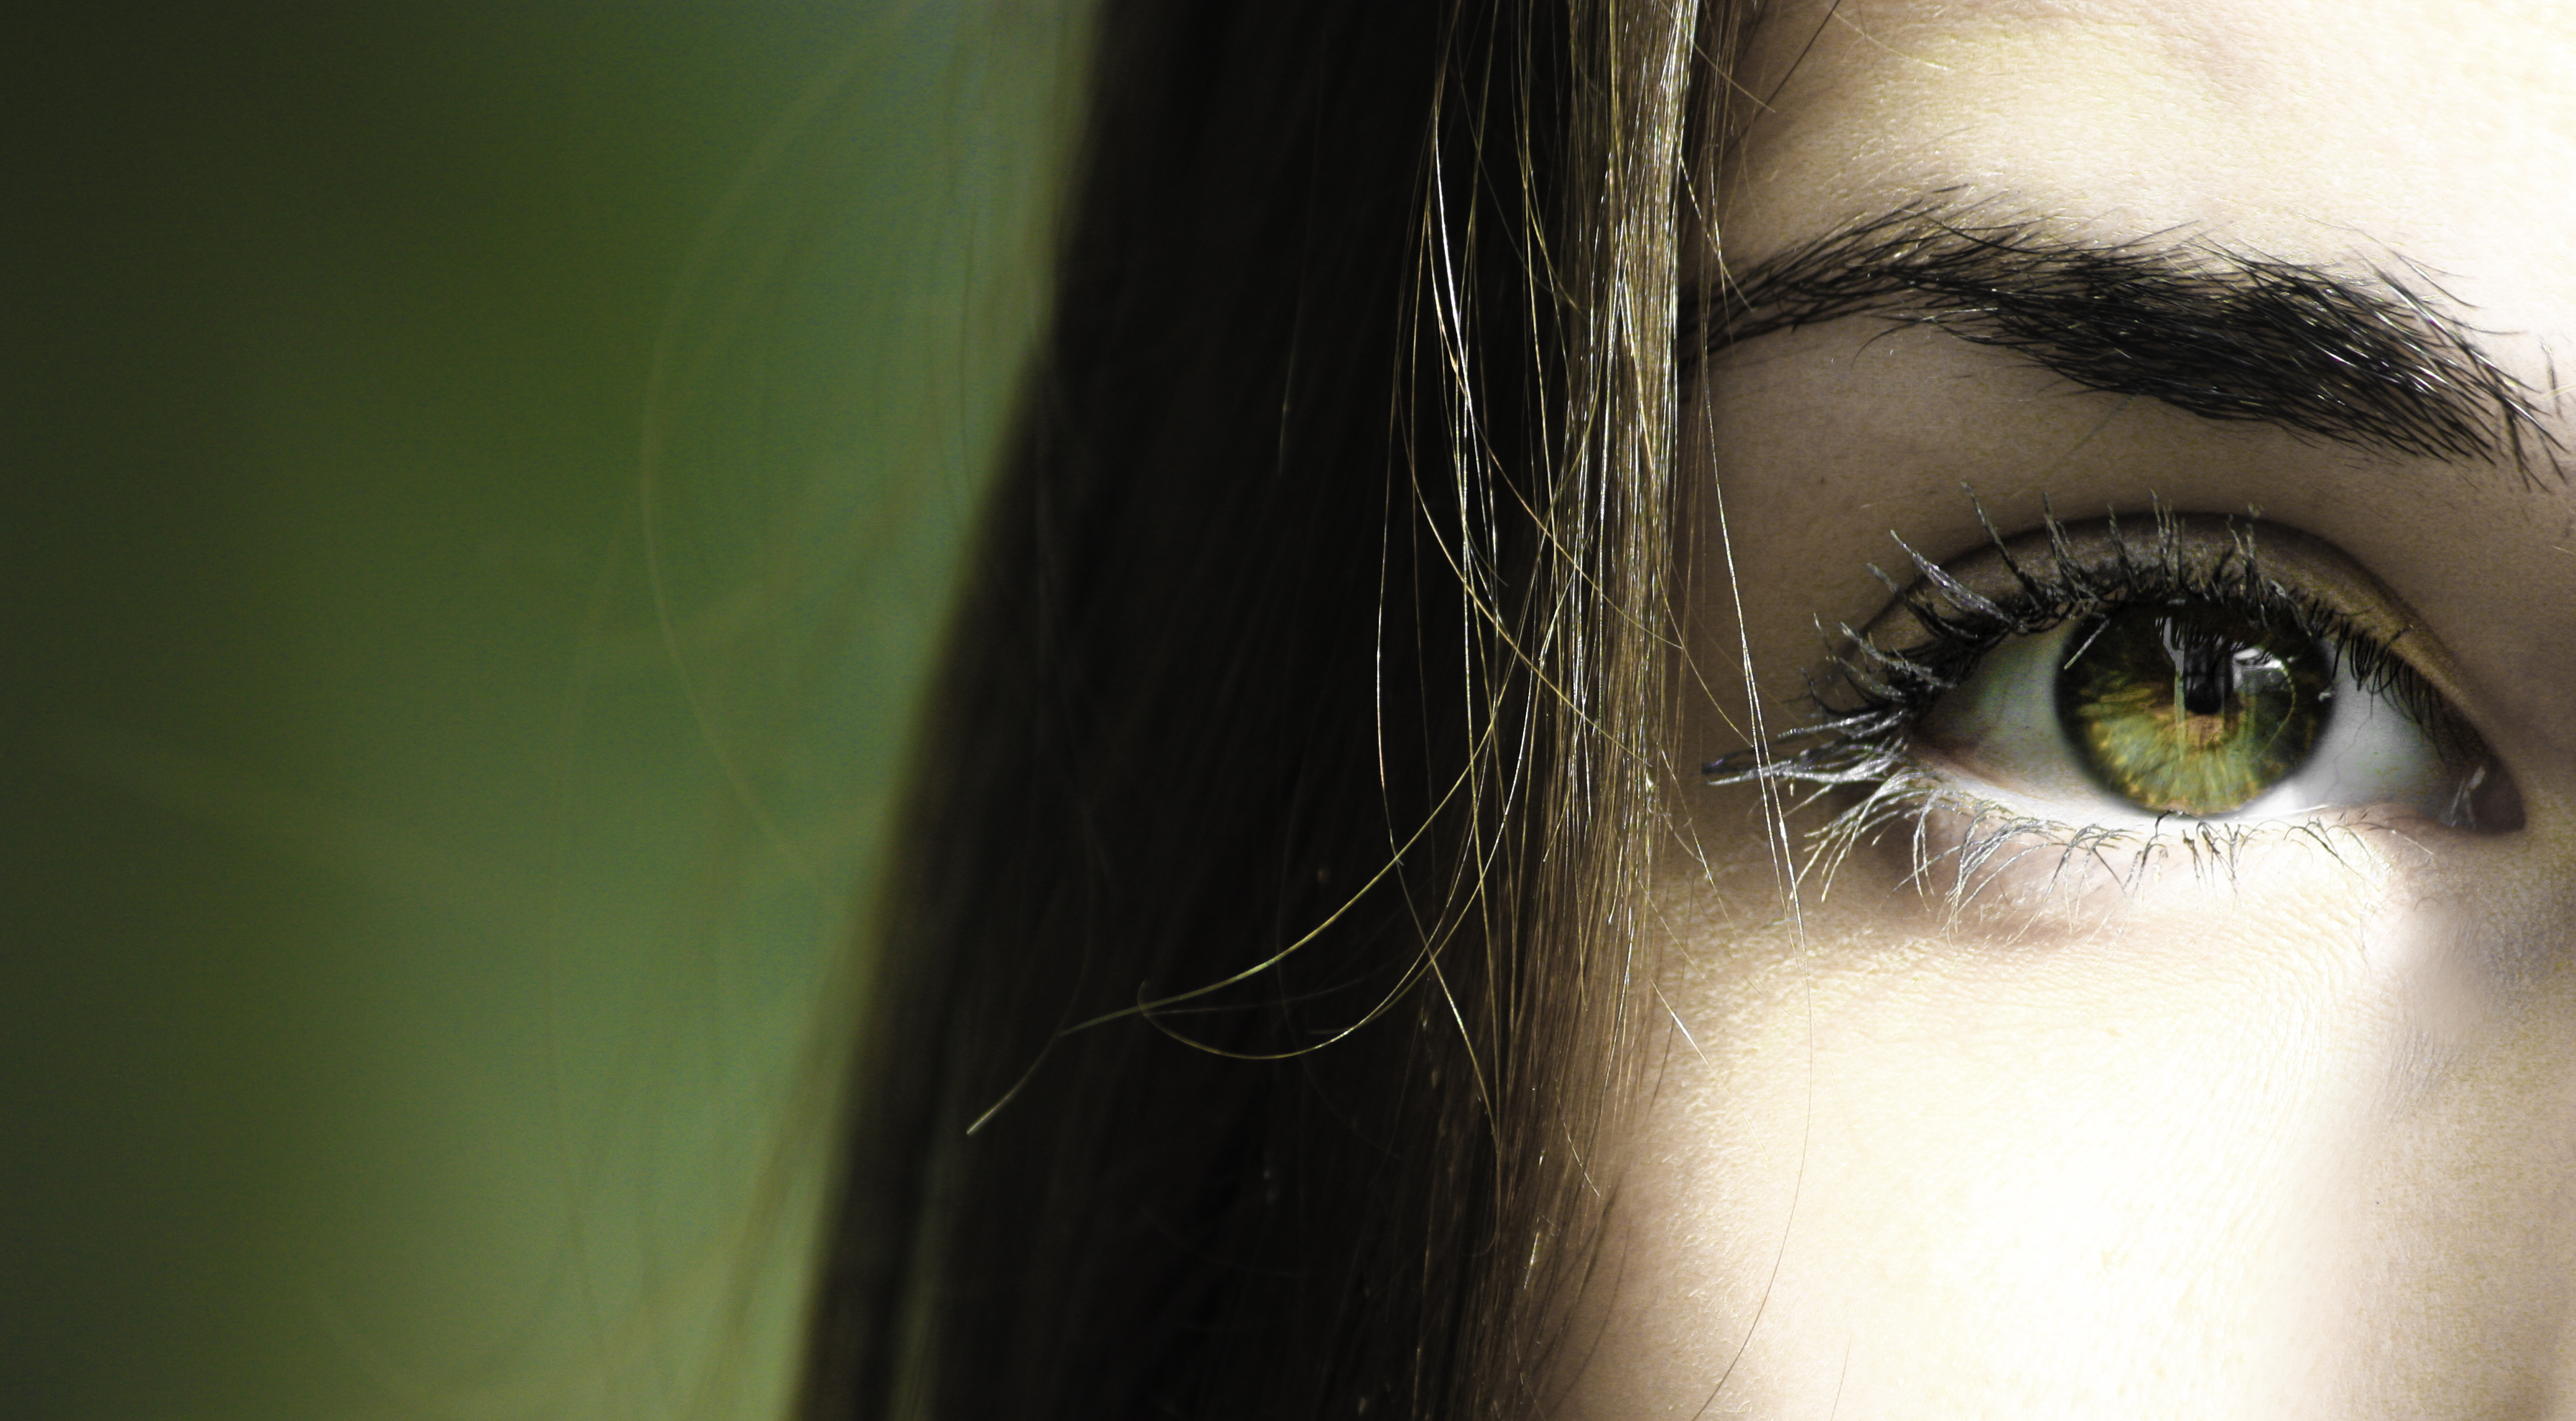 Hd Wallpapers Girl Indian Selective Focus Half Face Closeup Photography Of Female S